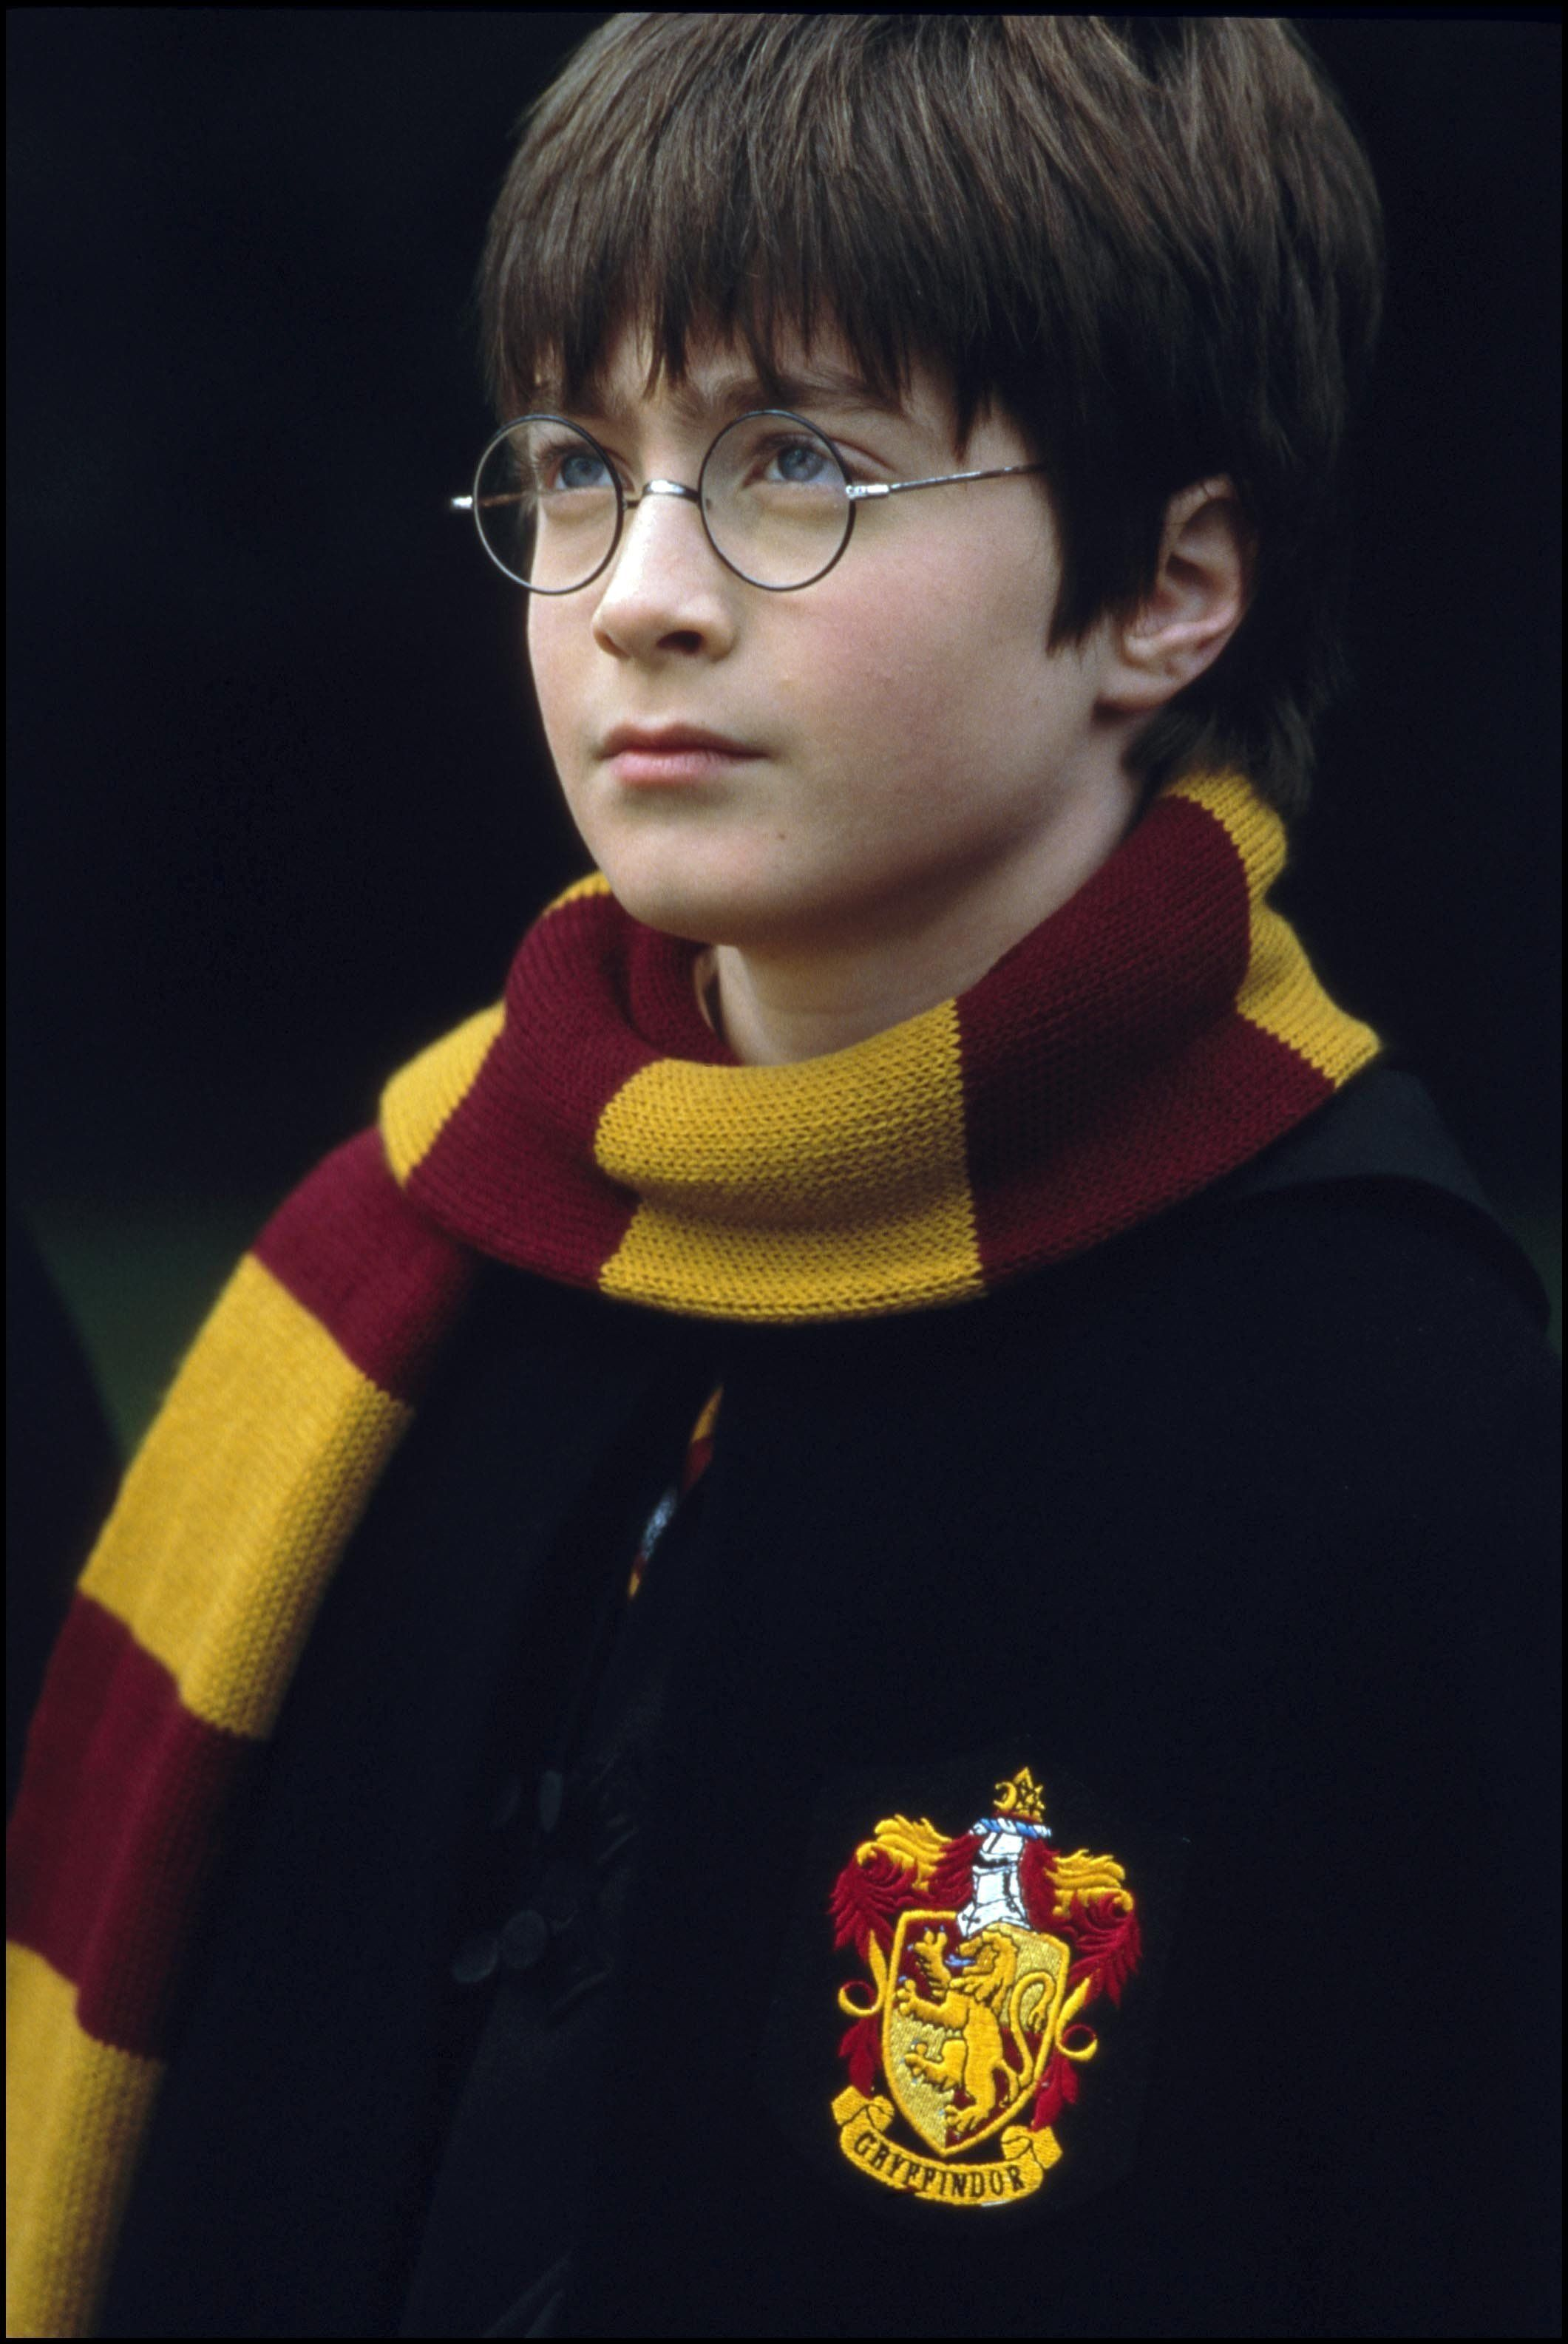 UNITED STATES - NOVEMBER 01:  Film 'Harry Potter and the philosopher's stone' In United States In November, 2001-Harry Potter (Daniel Radcliffe).  (Photo by 7831/Gamma-Rapho via Getty Images)